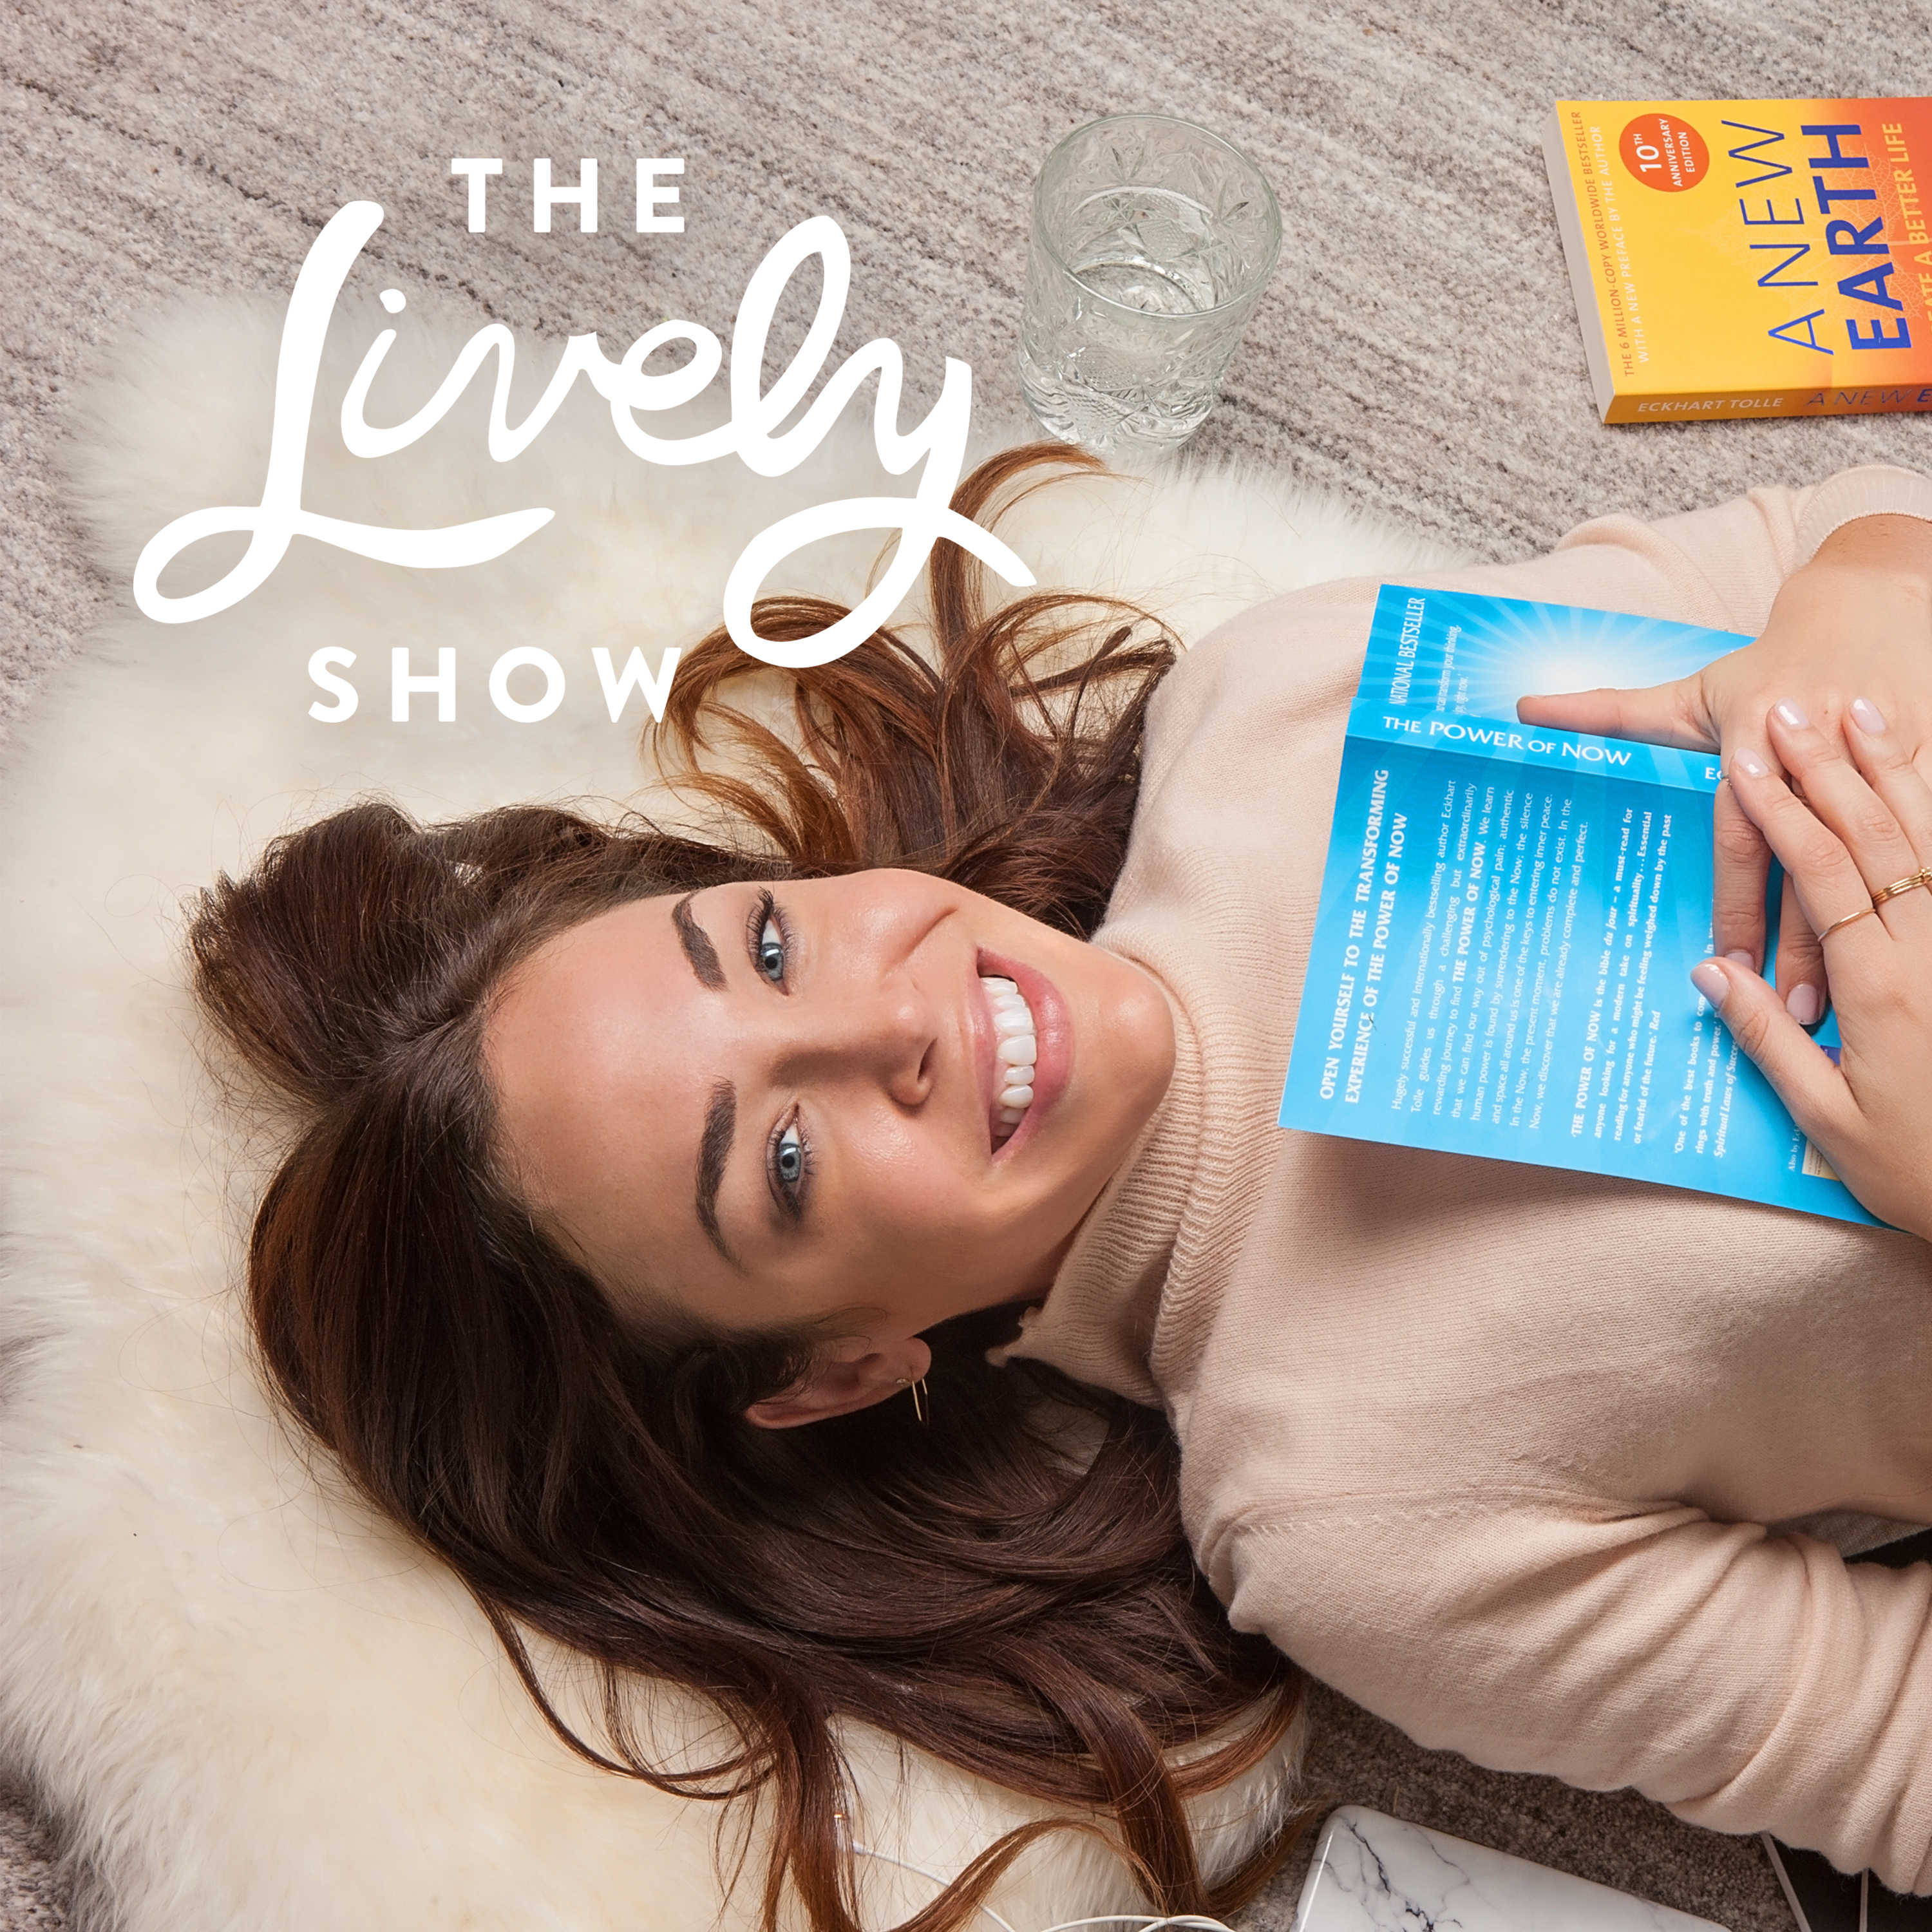 The Lively Show by Jess Lively